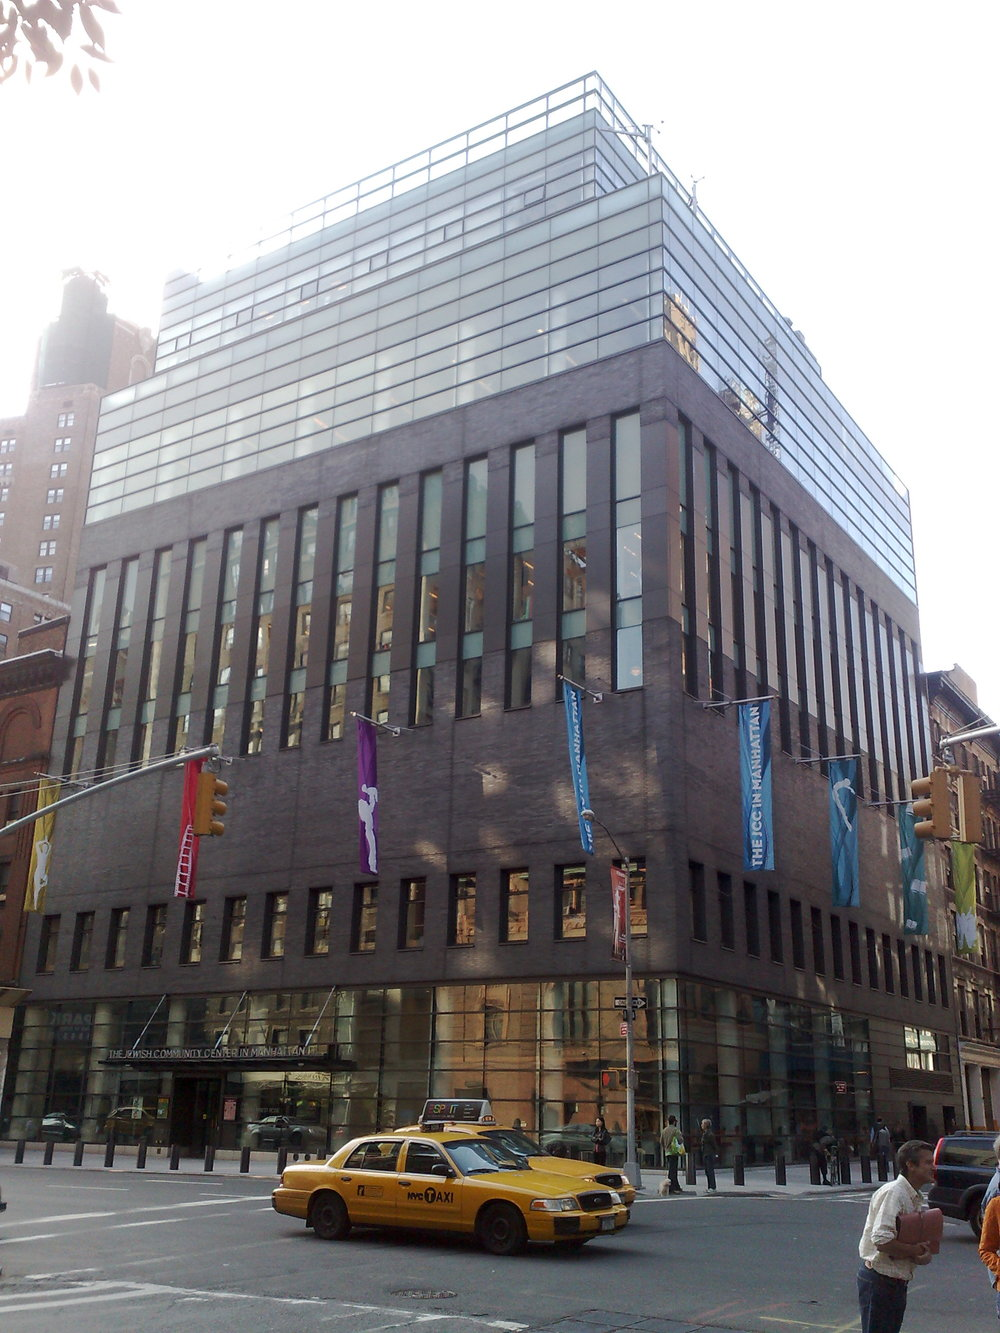 The JCC in Manhattan, whose director of film programs expressed public support for boycotts of Israel in a Huffington Post op-ed. Credit: Team Boerum via Wikimedia Commons.